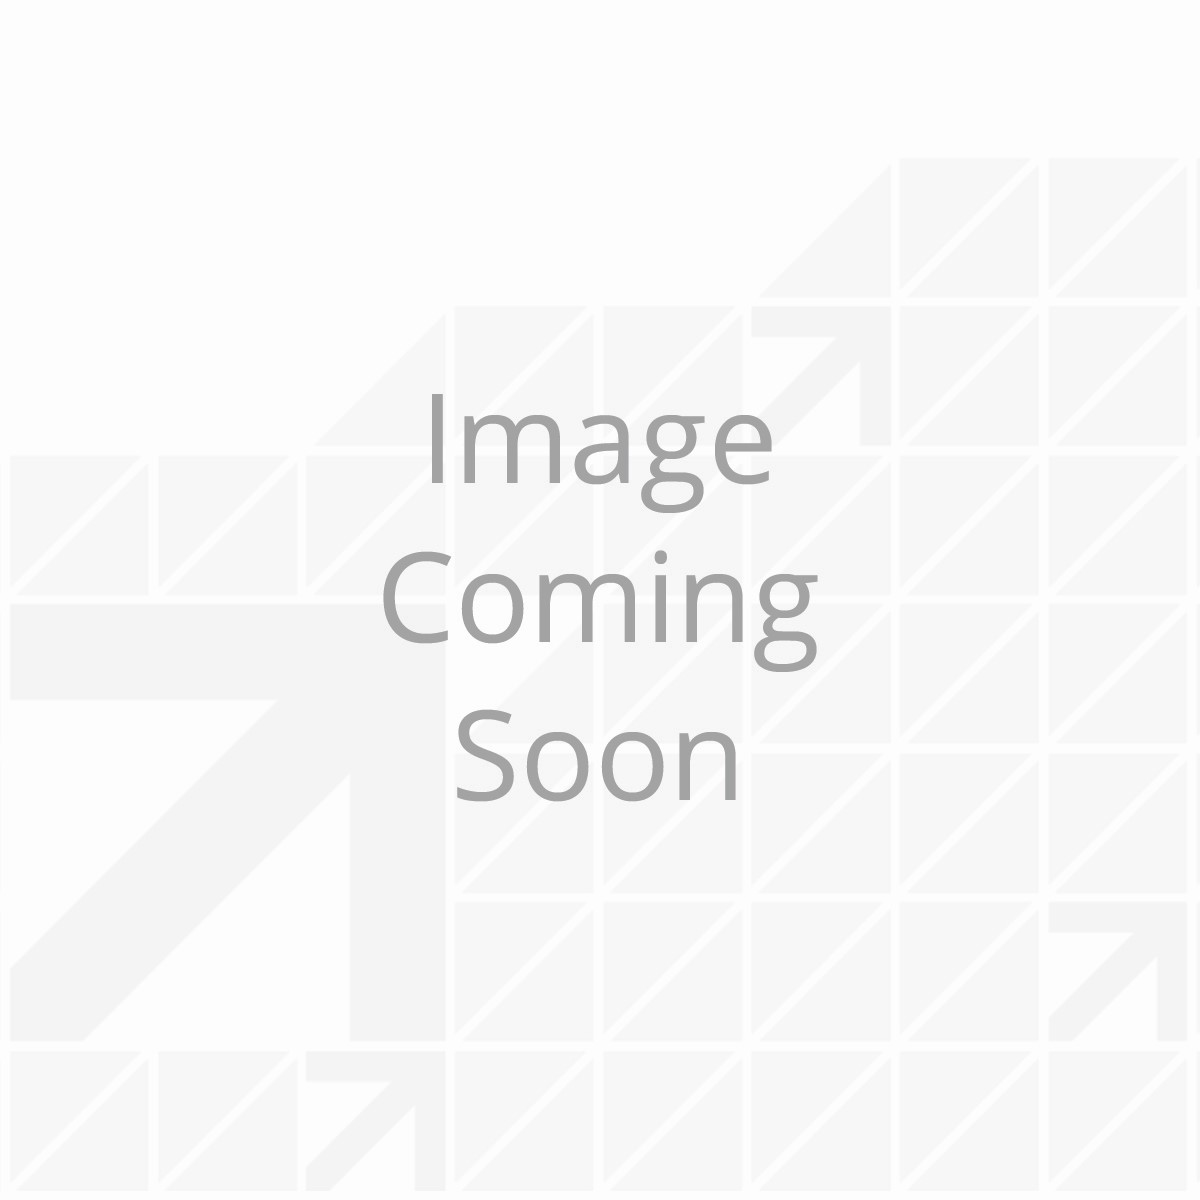 Call Lippert